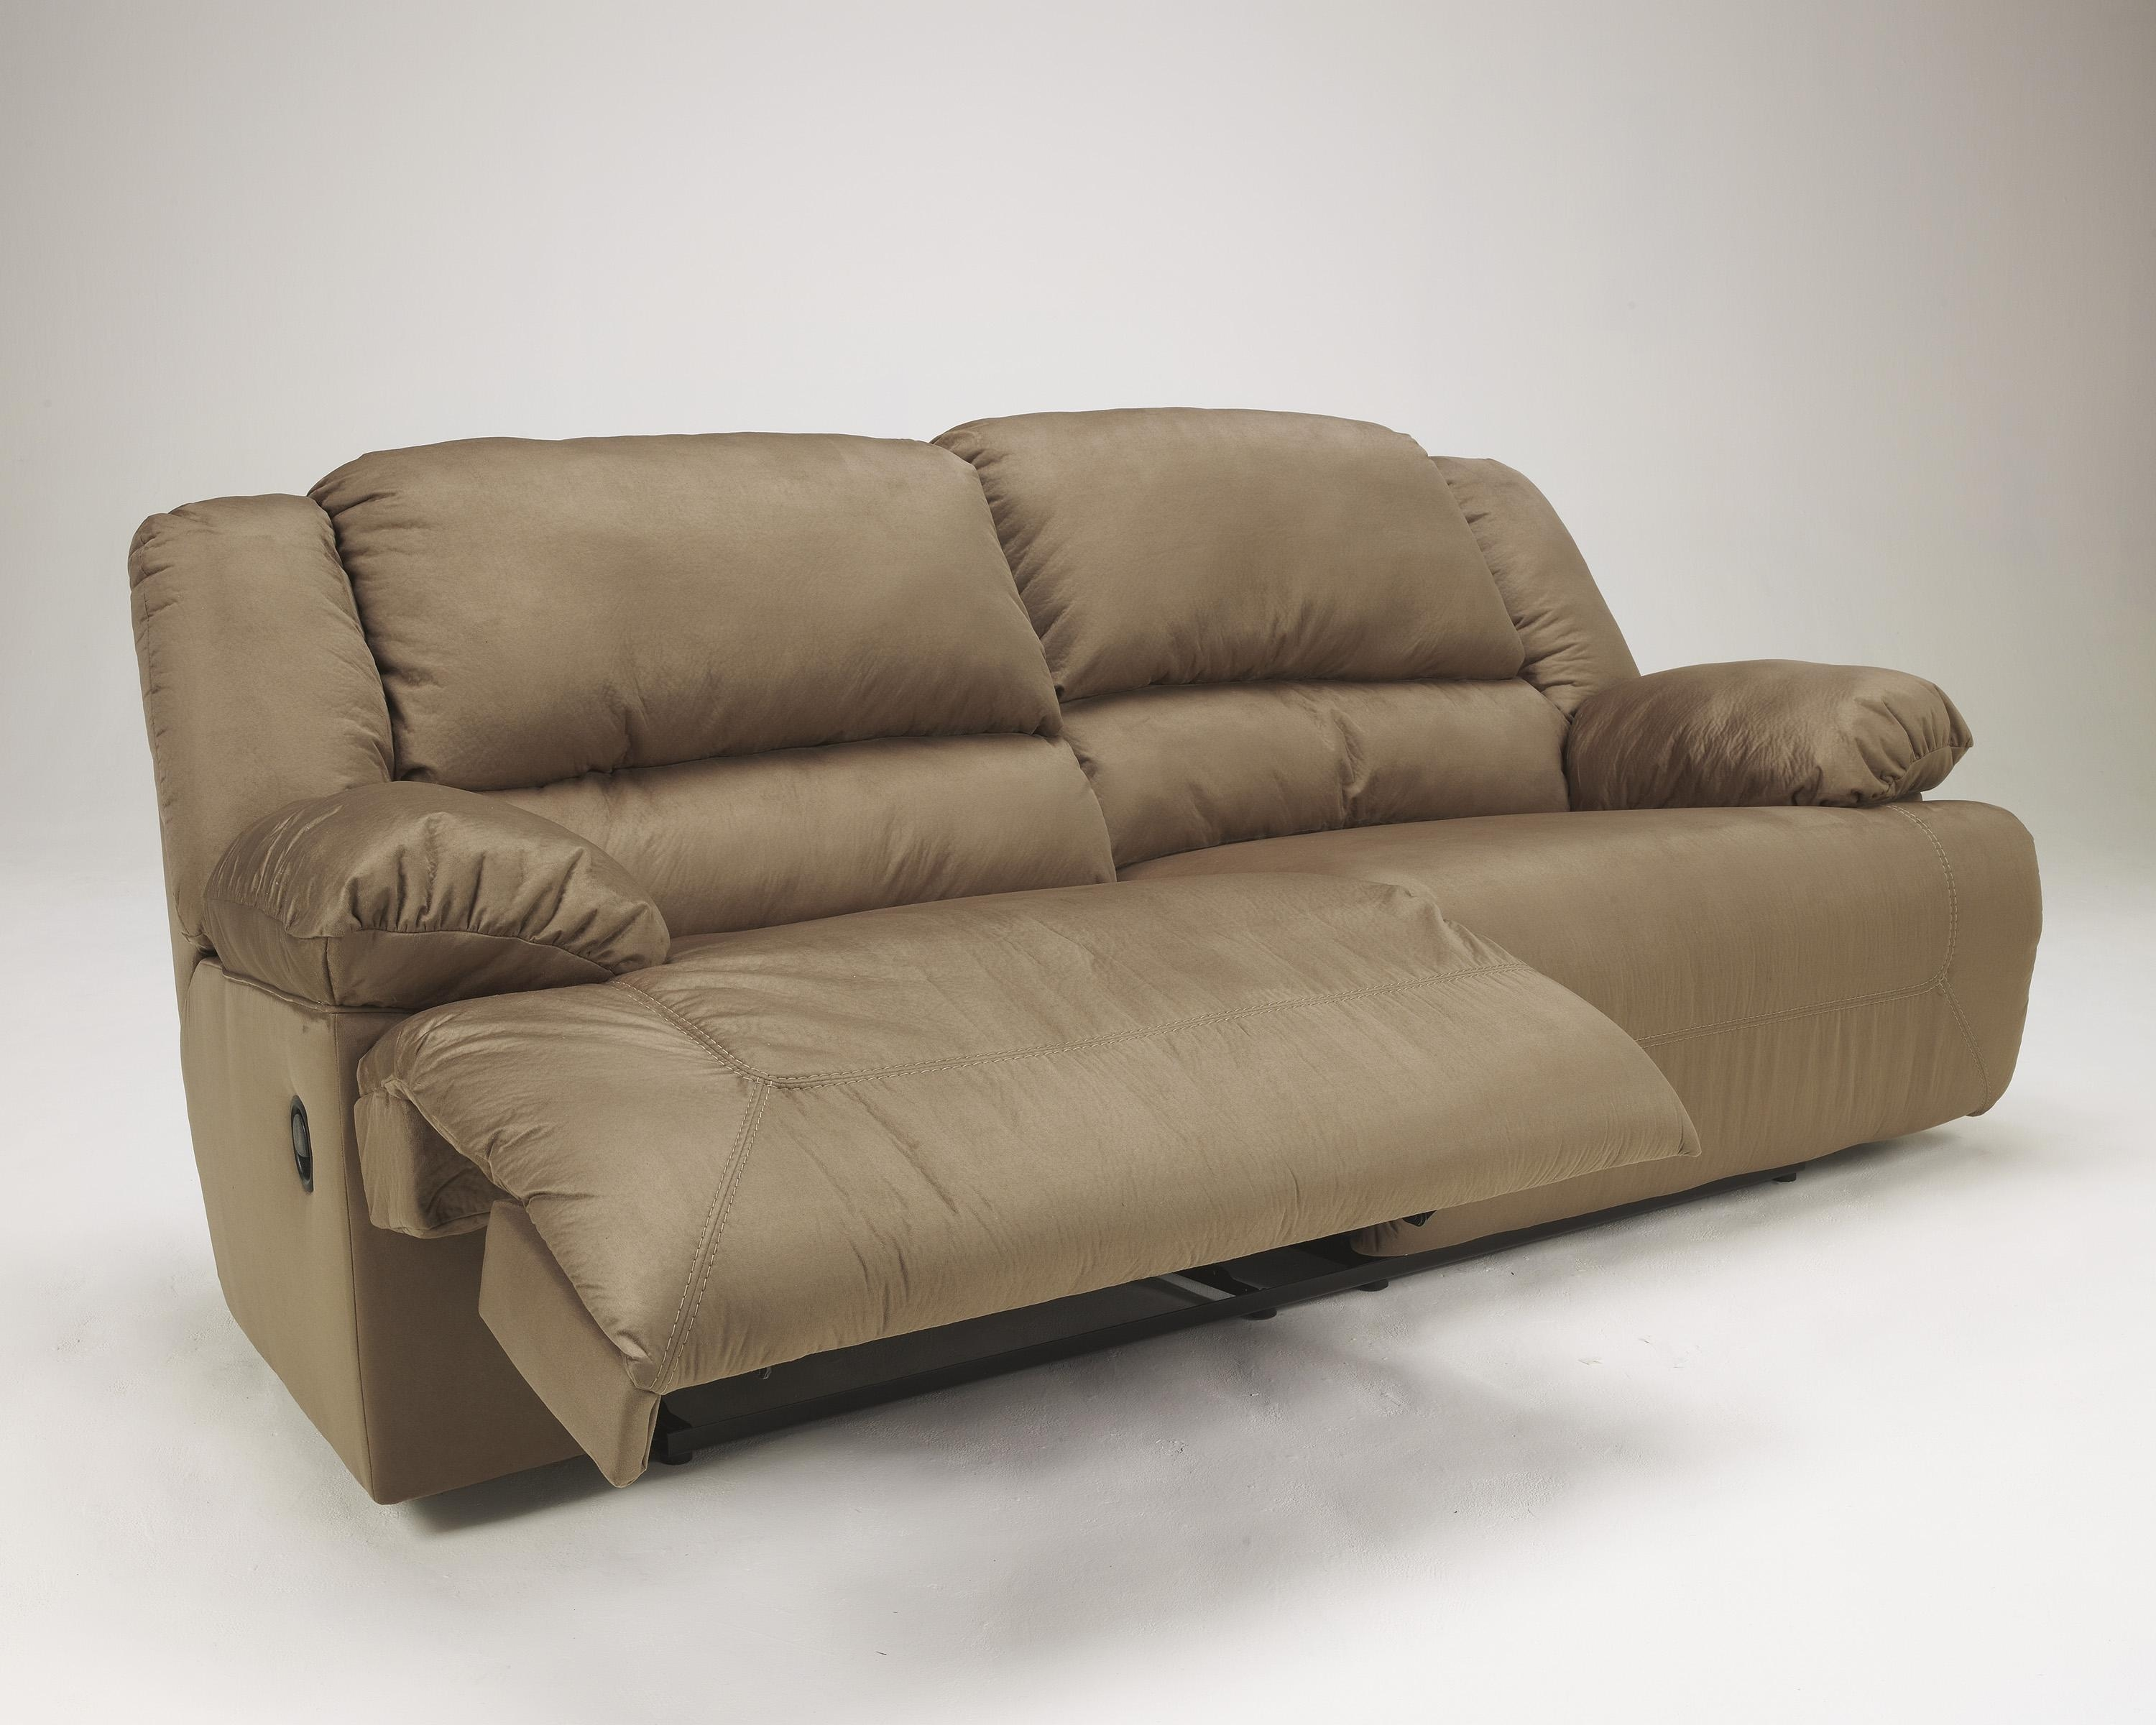 Hogan Contemporary Mocha 2  Seat Reclining Sofa | Living Rooms With Regard To 2 Seat Recliner Sofas (Image 7 of 20)